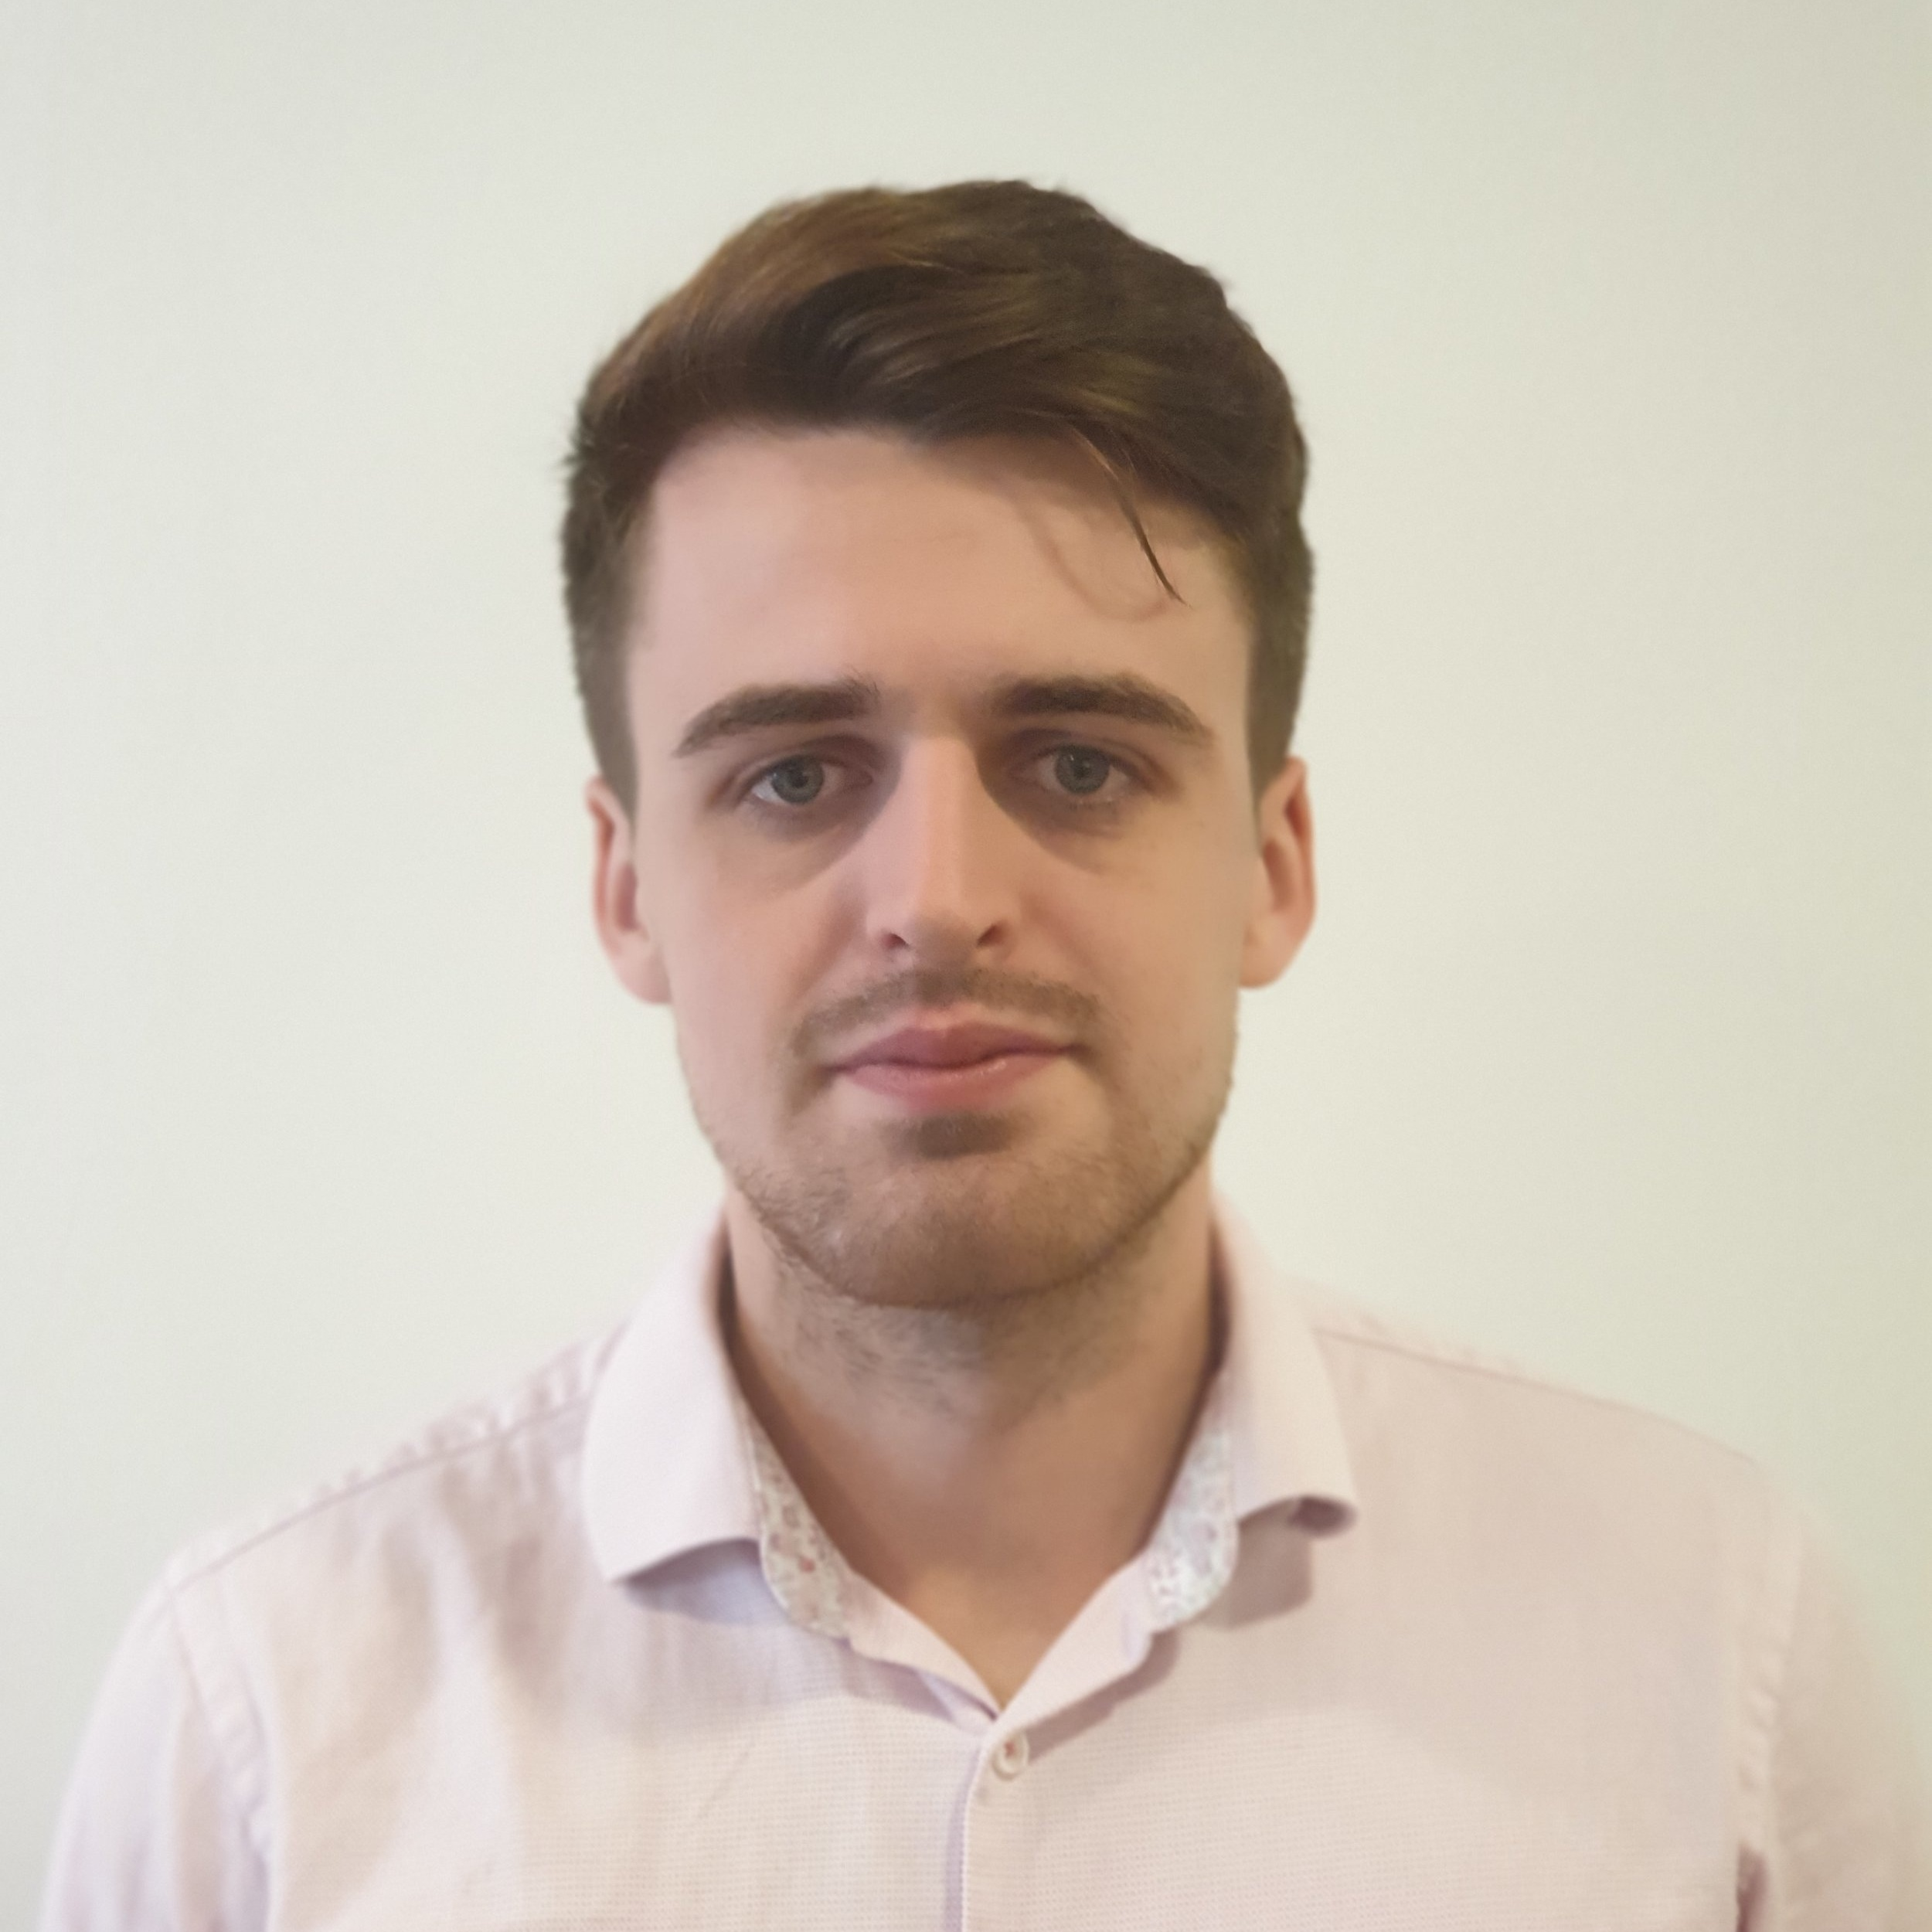 Ben Kennedy - Accountantben@alpha-accountants.com